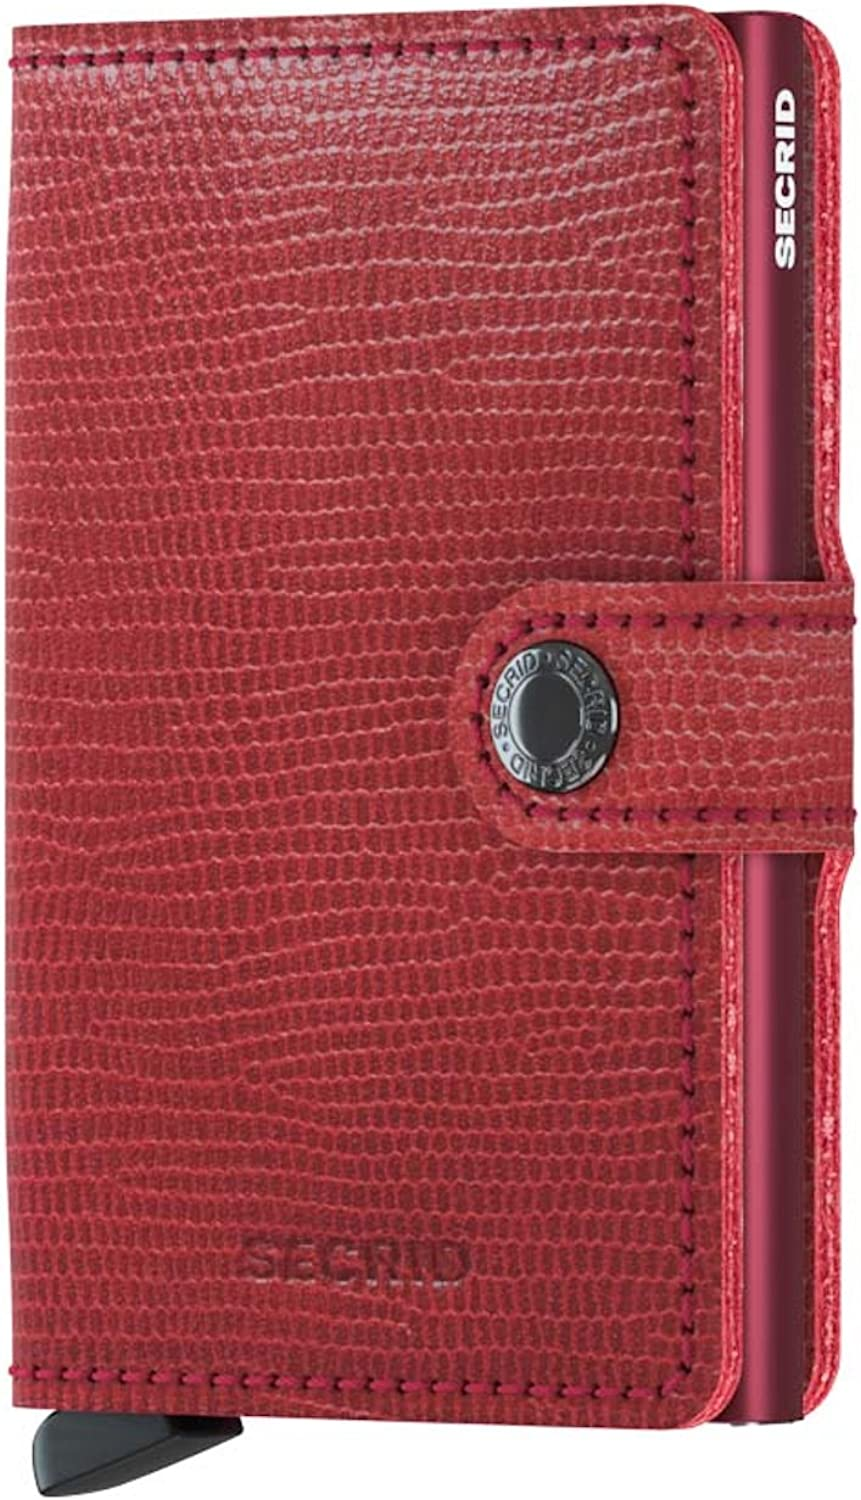 SECRID  Secrid Mini wallet Genuine Leather Rango Red Bordeaux RFID Safe Card Case for max 12 cards